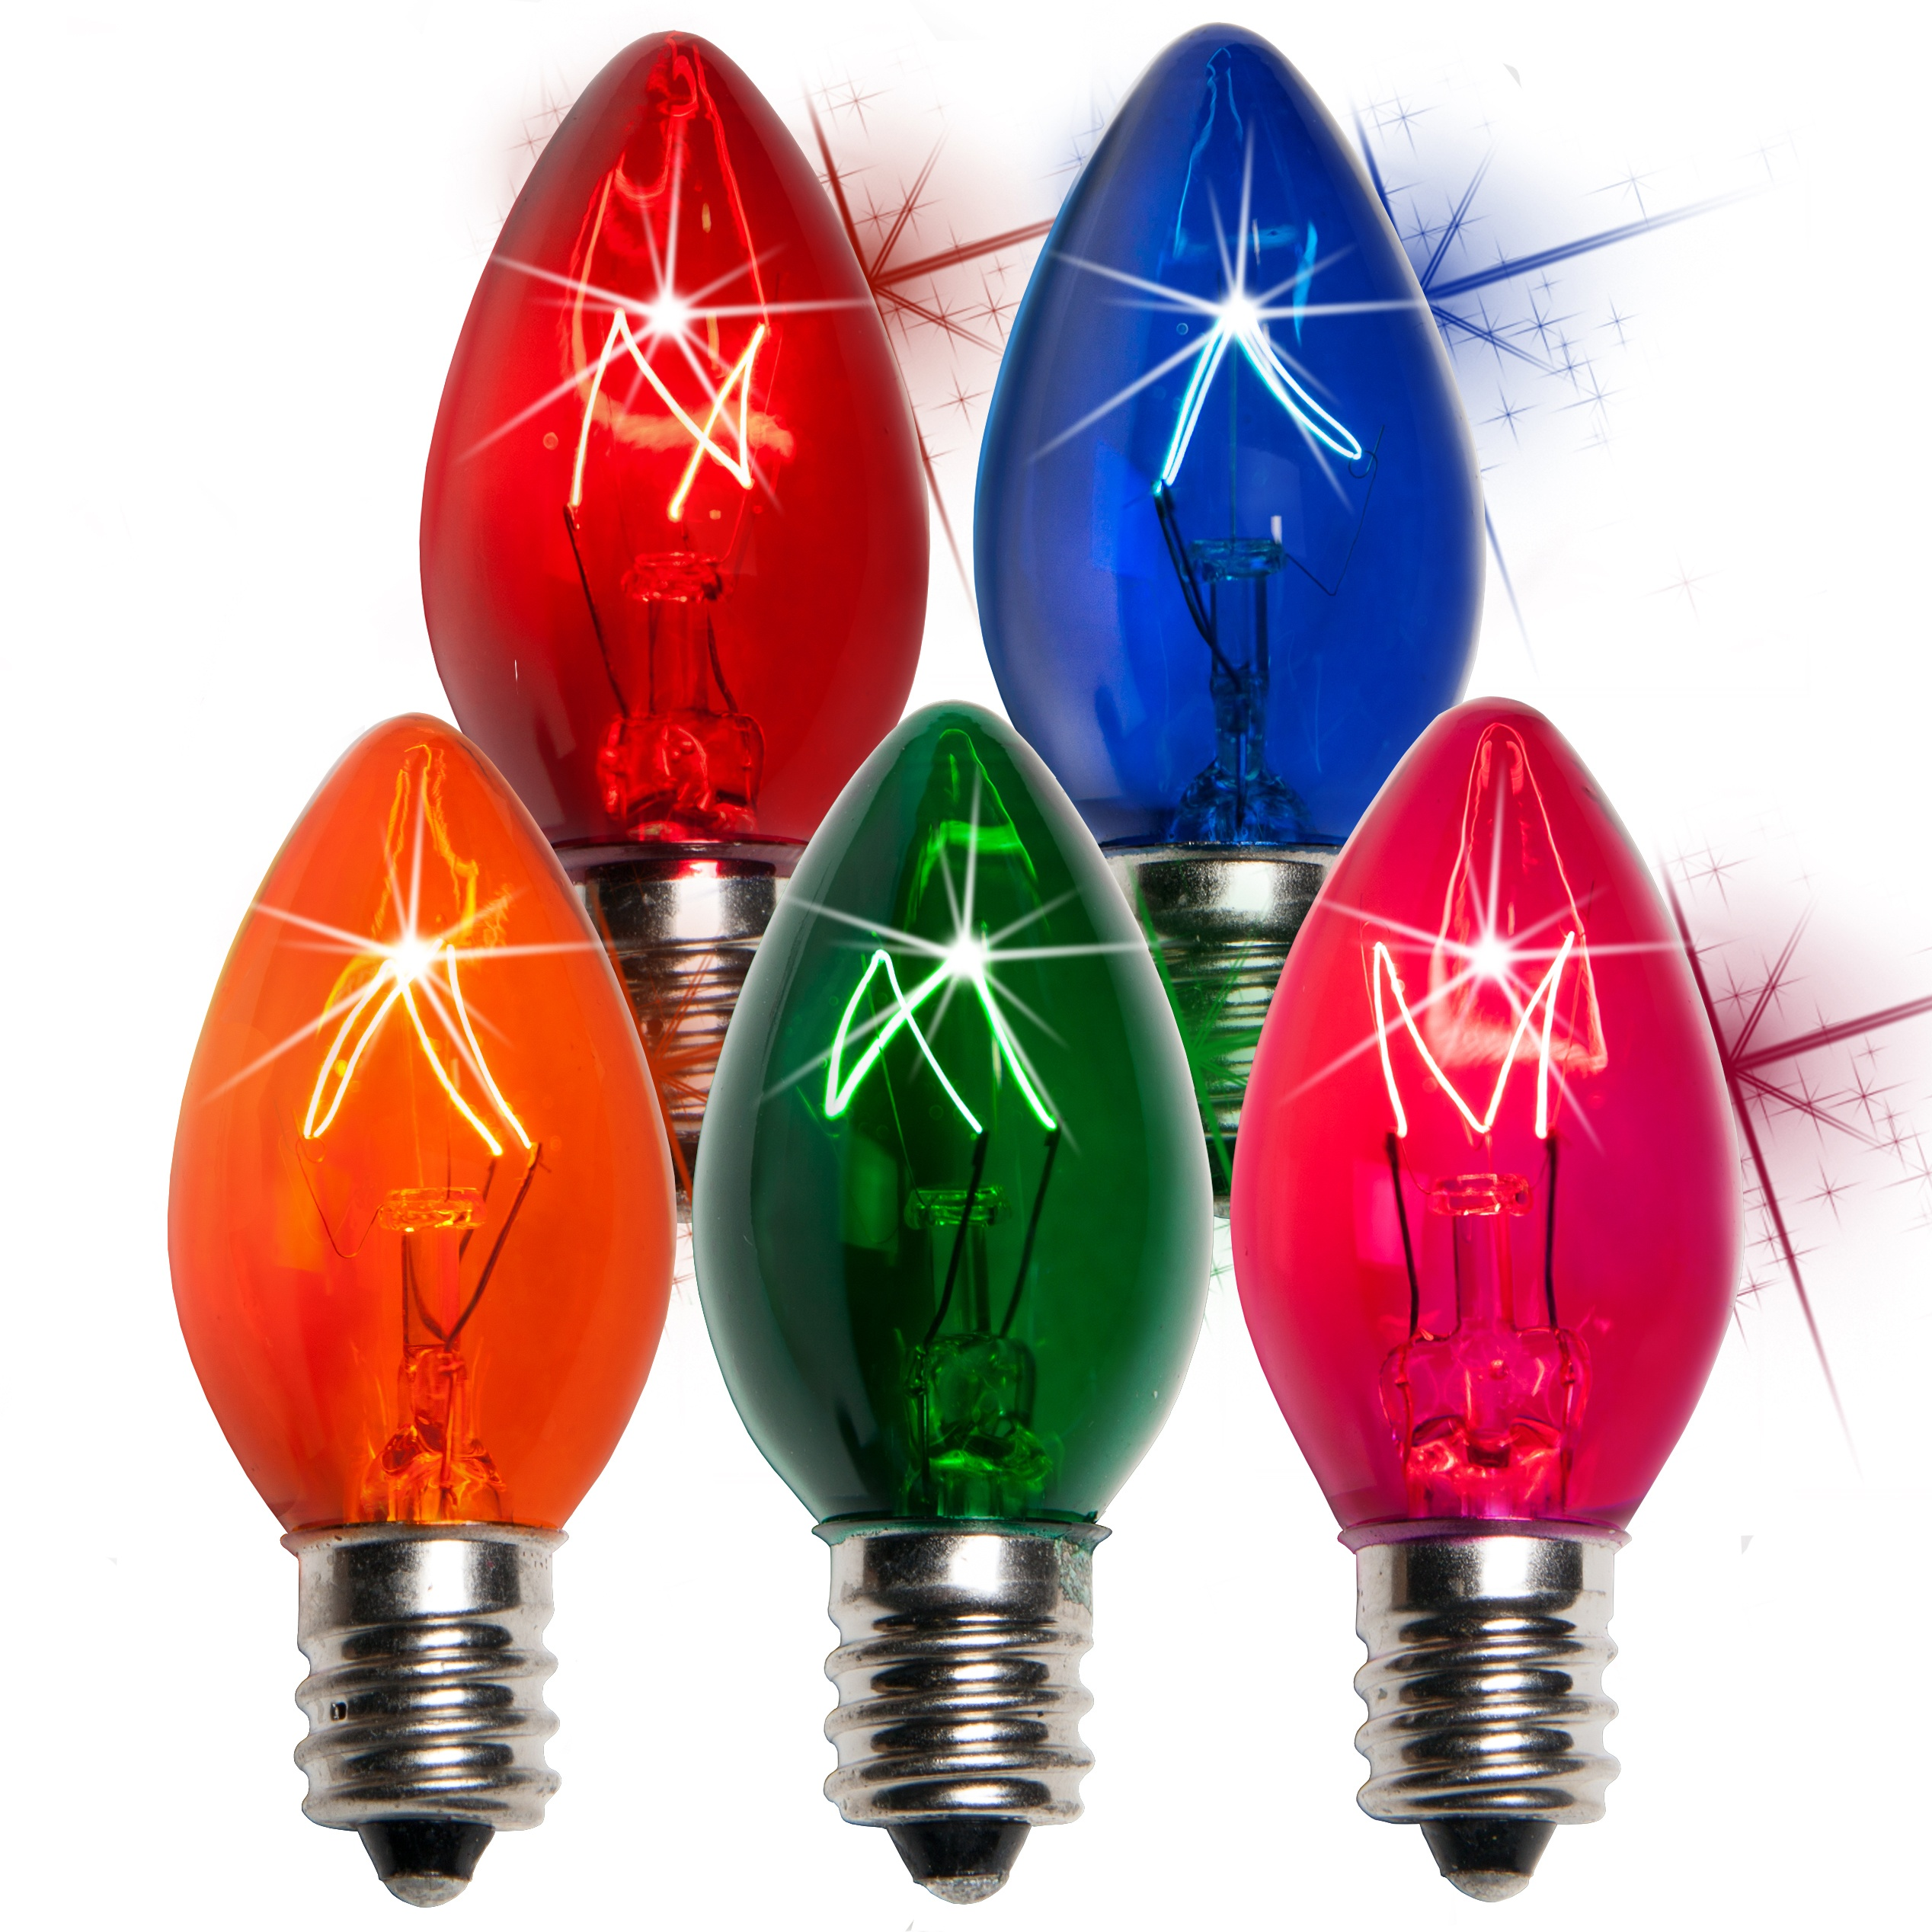 C7 Christmas Light Bulb - C7 Twinkle Multicolor Christmas Light Bulbs, 7 Watt